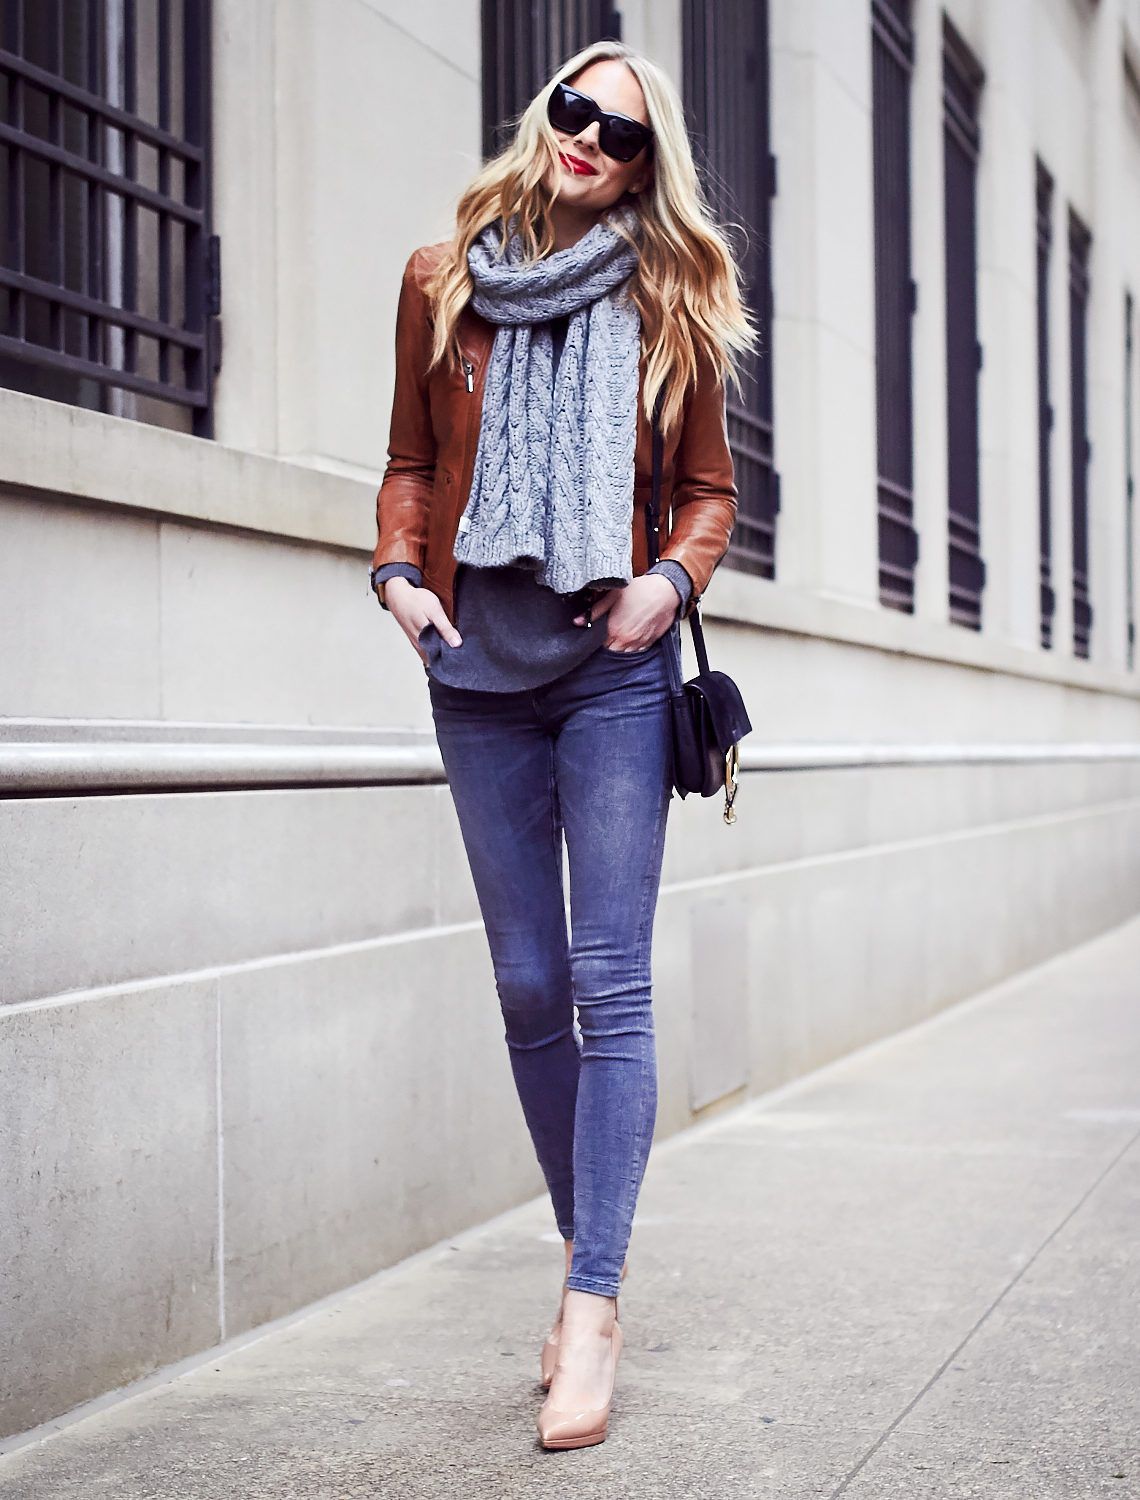 Fall Outfit, Winter Outfit, Grey Knit Scarf, Tan Faux Leather Jacket, Grey Skinny Jeans, Nude Pumps